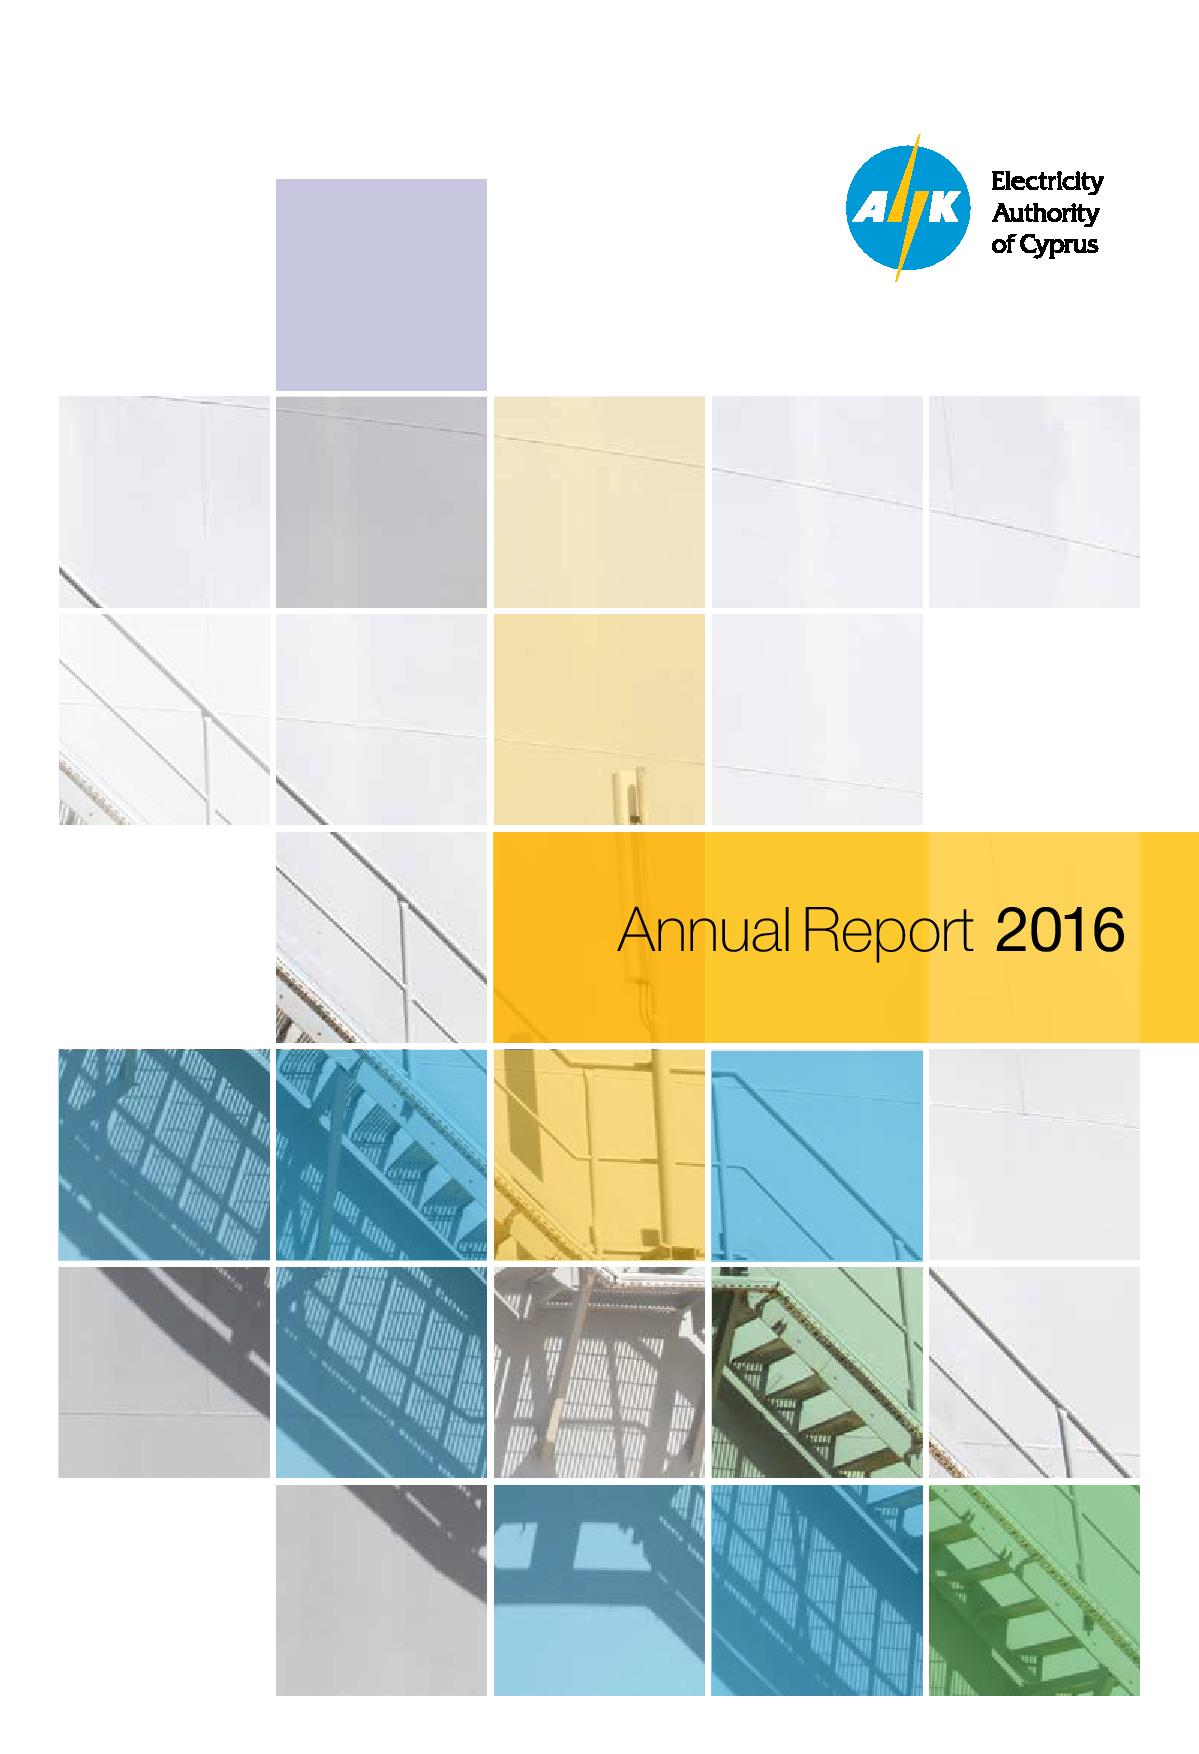 EAC Annual Report 2016